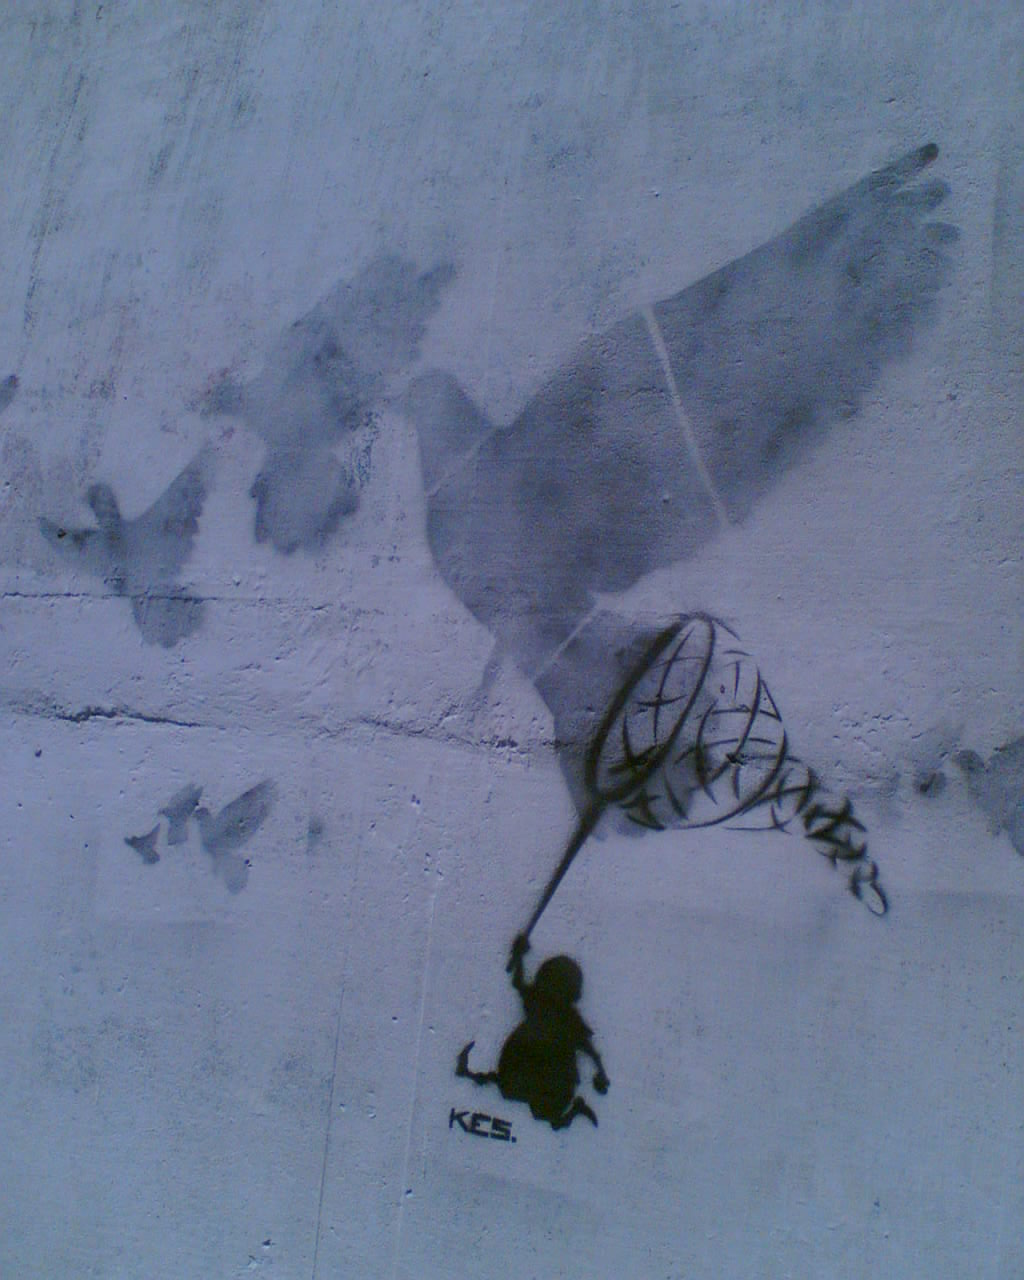 graffiti of a small man with a net chasing the shadows of enormous birds, which remain free, flying, uncaught